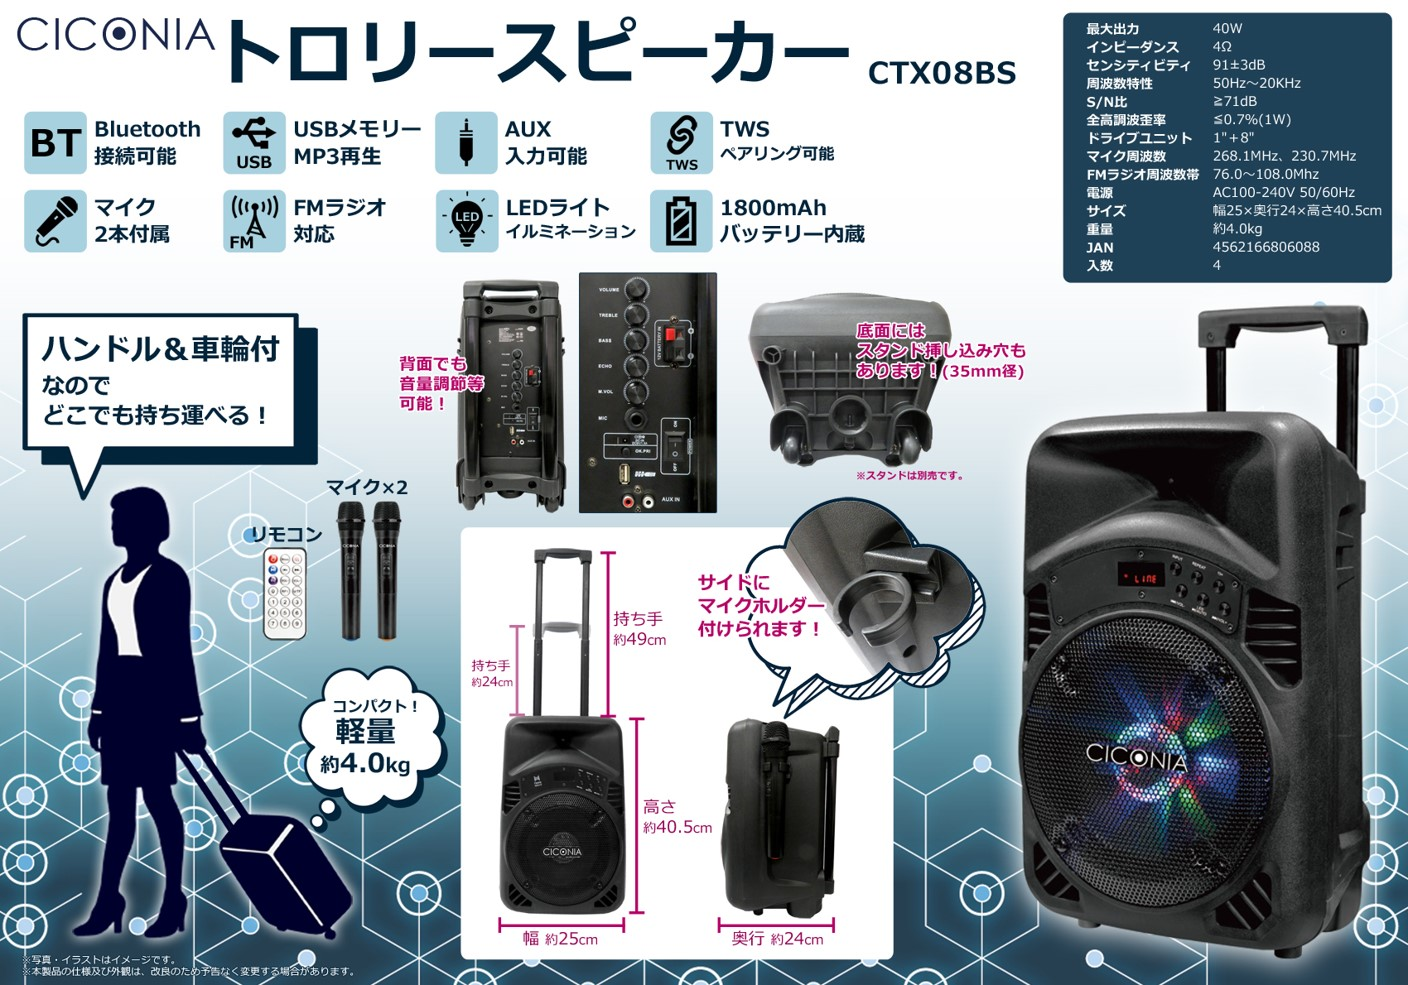 CICONIA トロリースピーカー CTX08BS